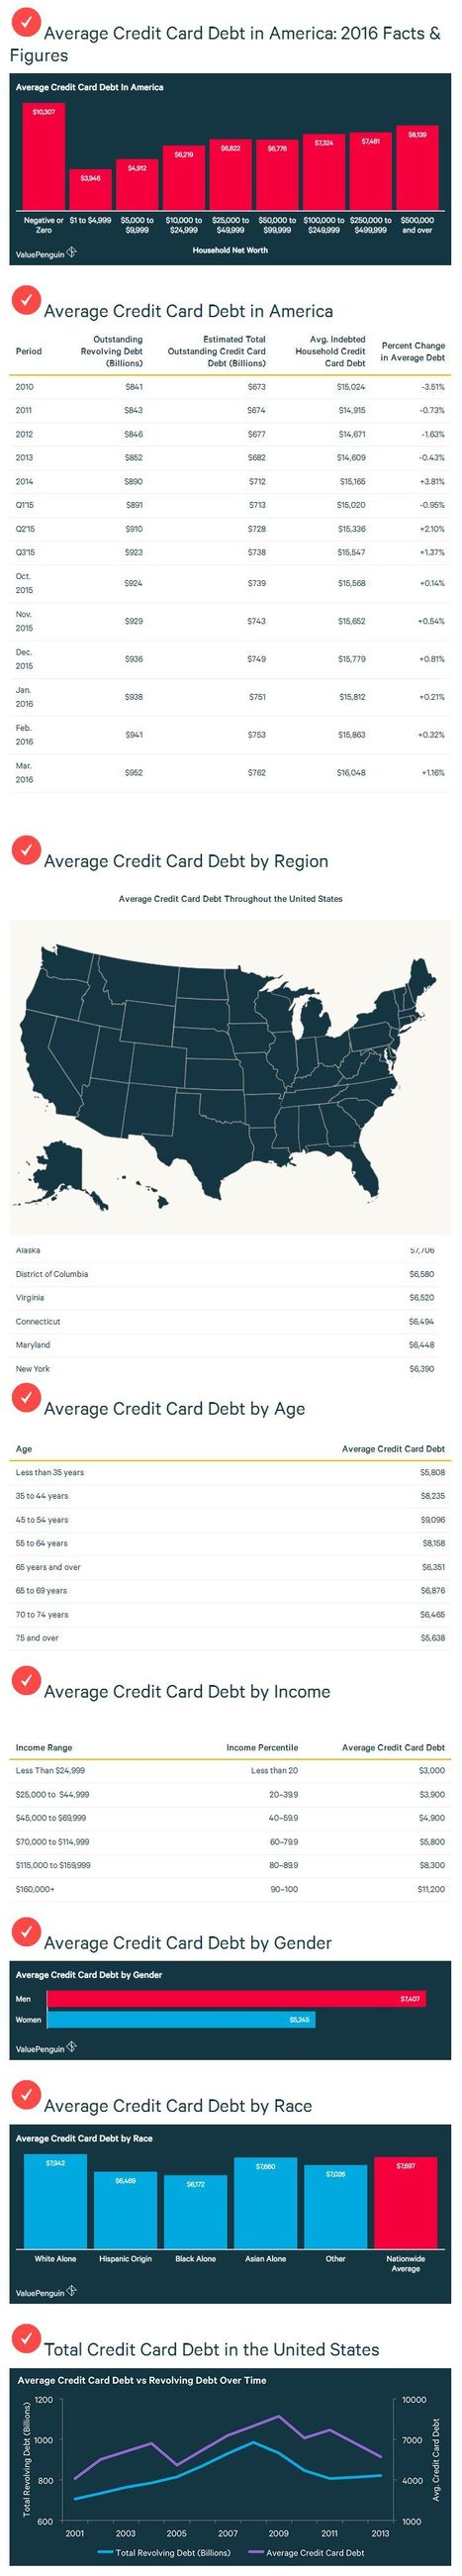 2016 American Household Credit Card Debt - INFOGRAPHIC | Health & Digital Tech Magazine - 2016 | Scoop.it